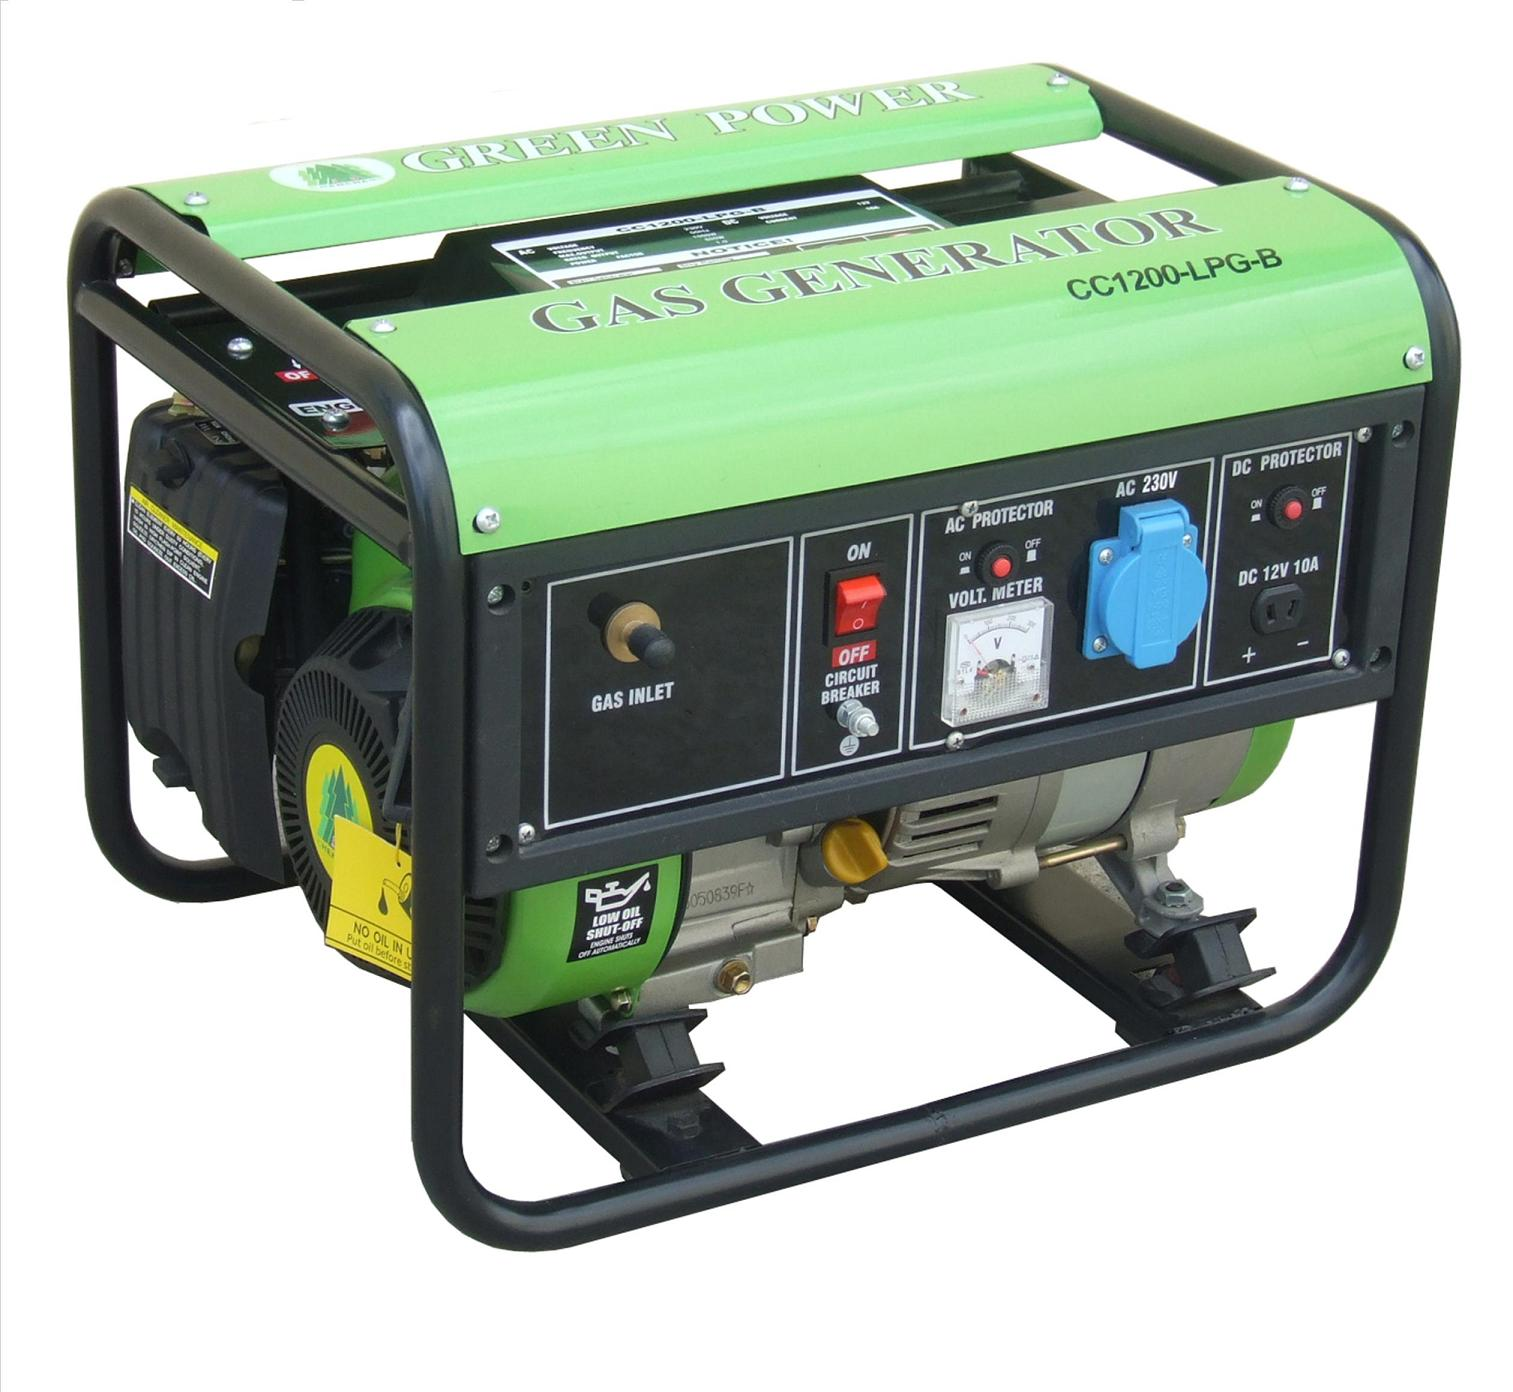 Greenpower Factory Fitted Gas Generator Buy Factory Fitted Gas